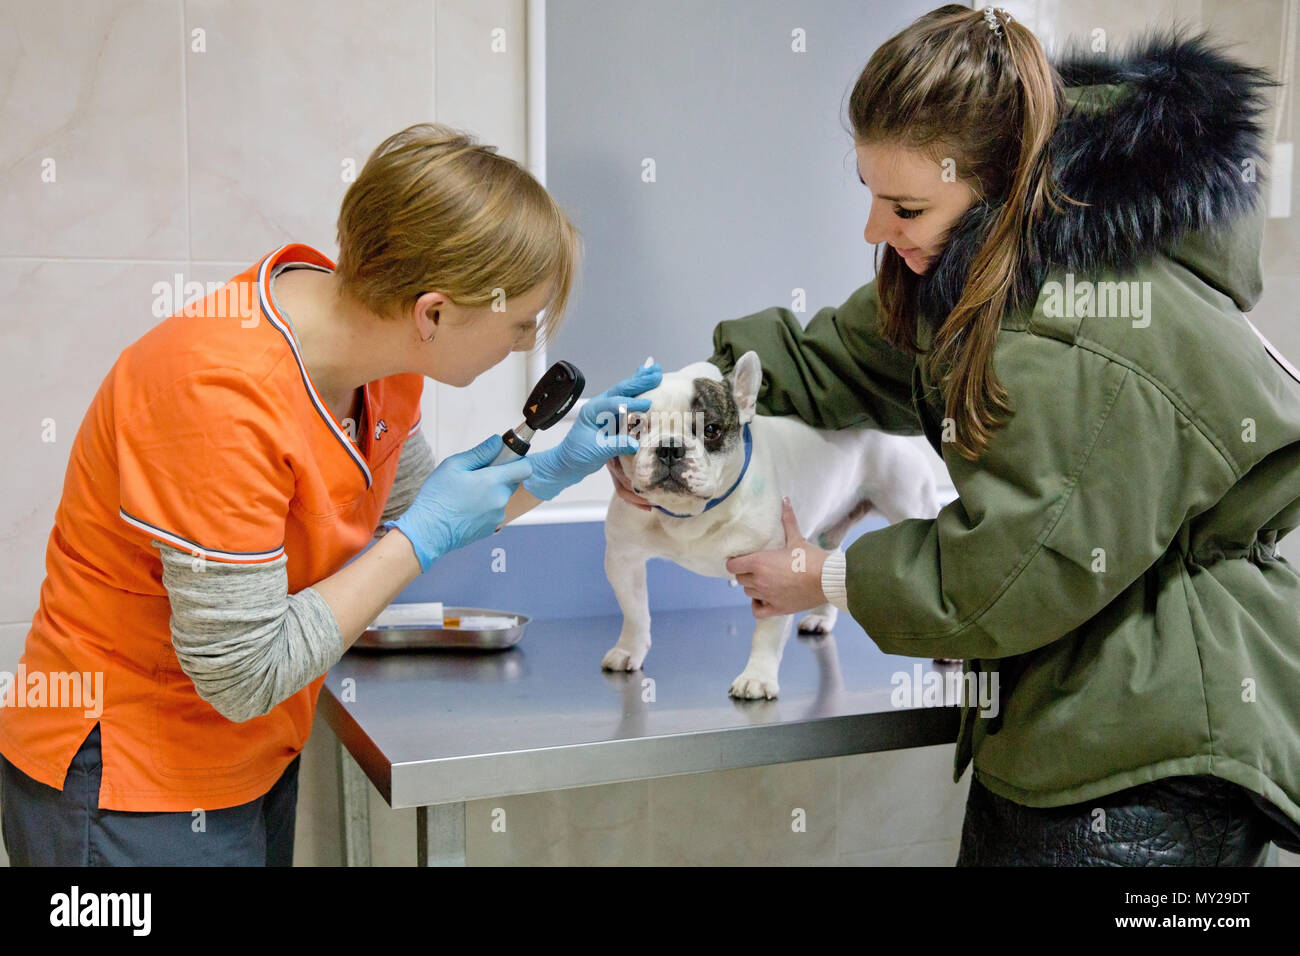 Veterinarian checks the eyes of a dog, biomicroscopy. Veterinarian ophthalmologist doing medical procedure, examining the eyes of a dog in a veterinary clinic. Healthy dog under medical exam. - Stock Image